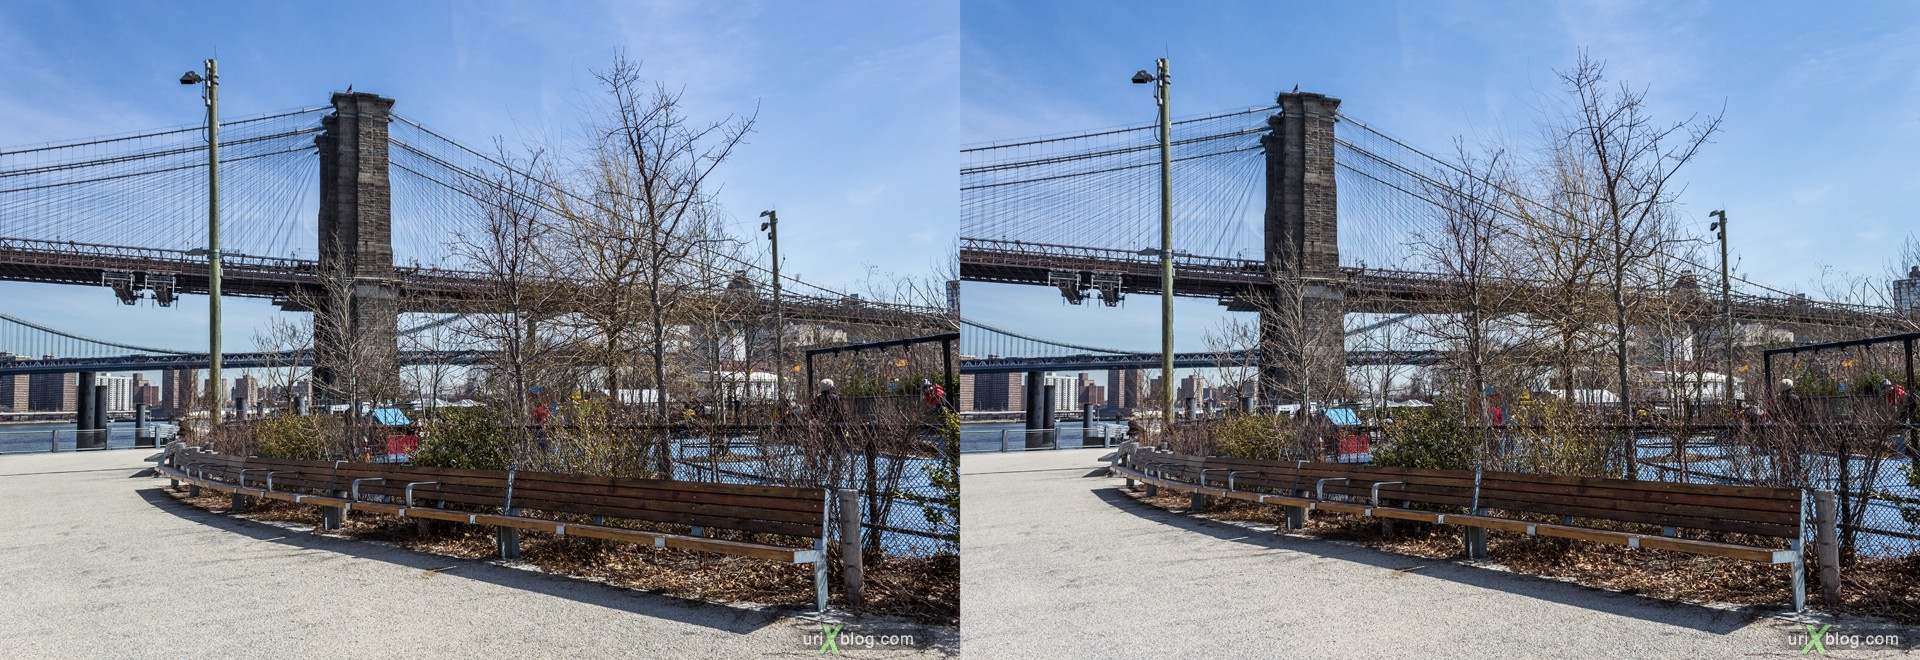 2013, Brooklyn Bridge park, Brooklyn, NYC, New York City, USA, 3D, stereo pair, cross-eyed, crossview, cross view stereo pair, stereoscopic